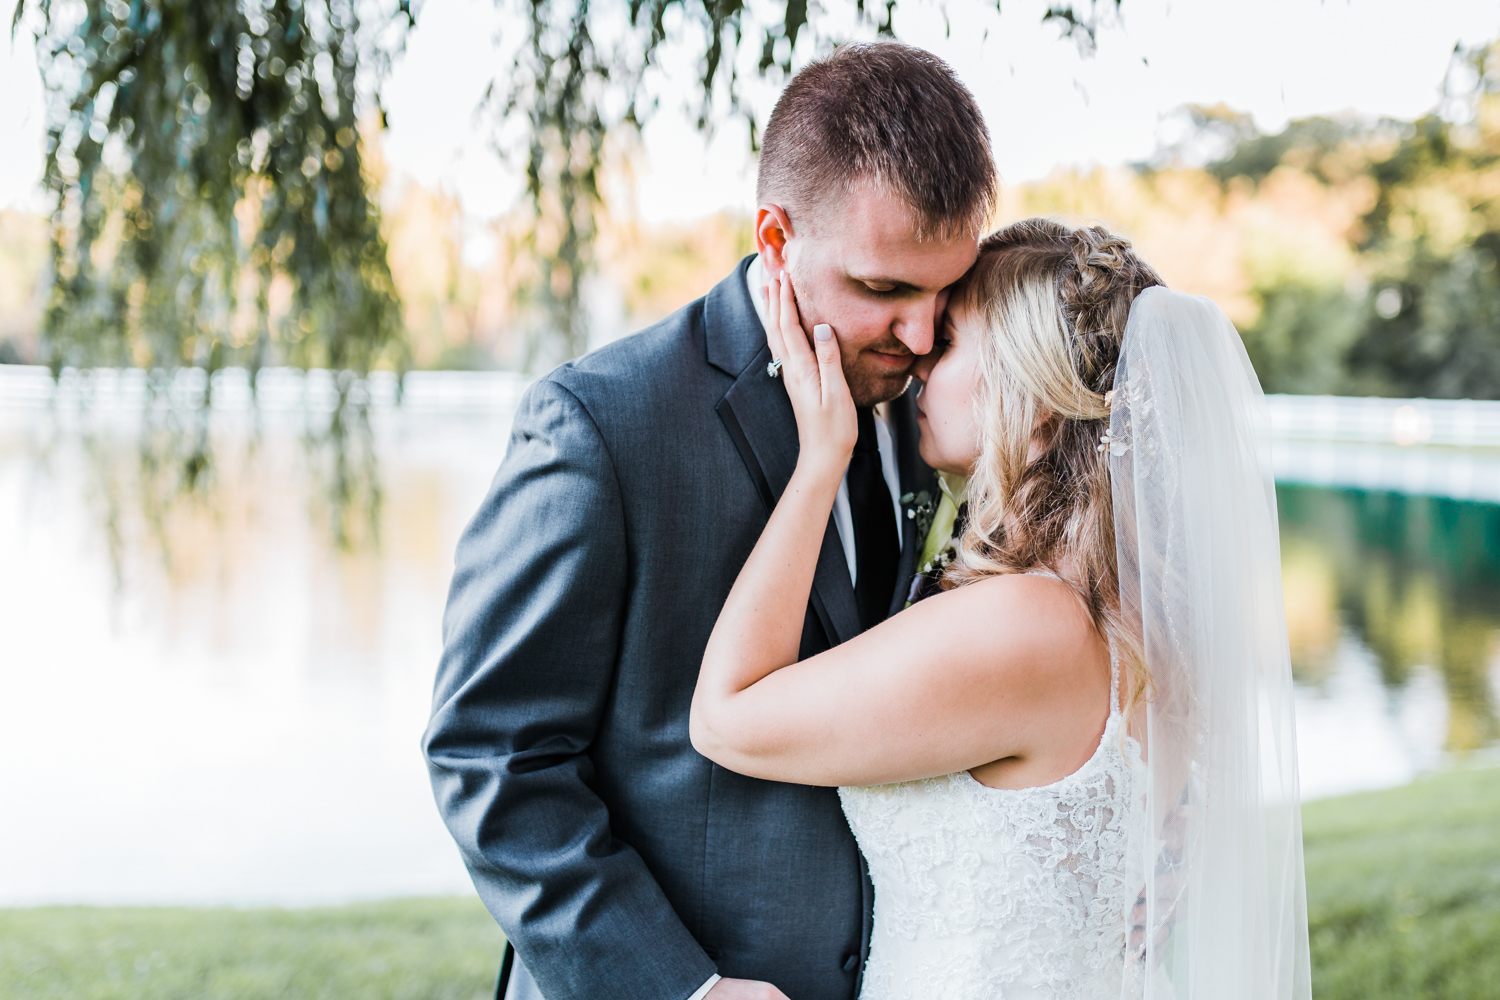 Couple hugs by willow tree - Maryland wedding video